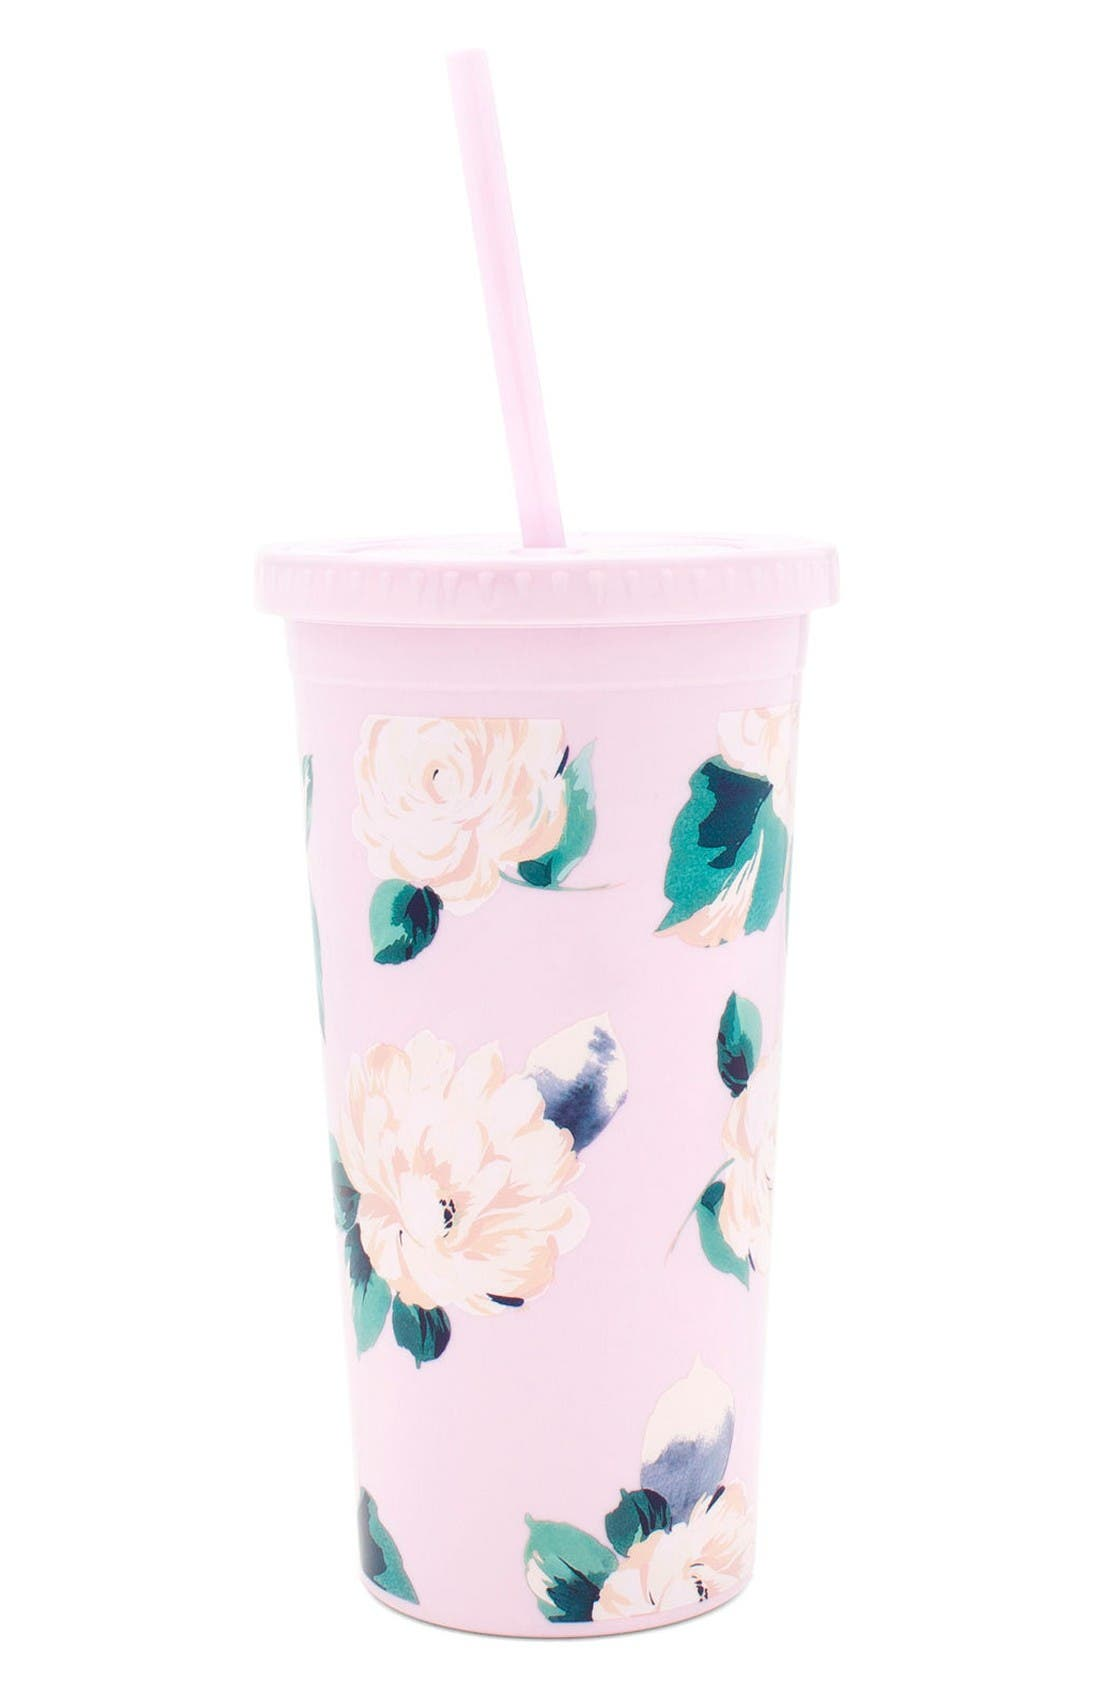 Main Image - ban.do Lady of Leisure - Sip Sip Tumbler & Straw